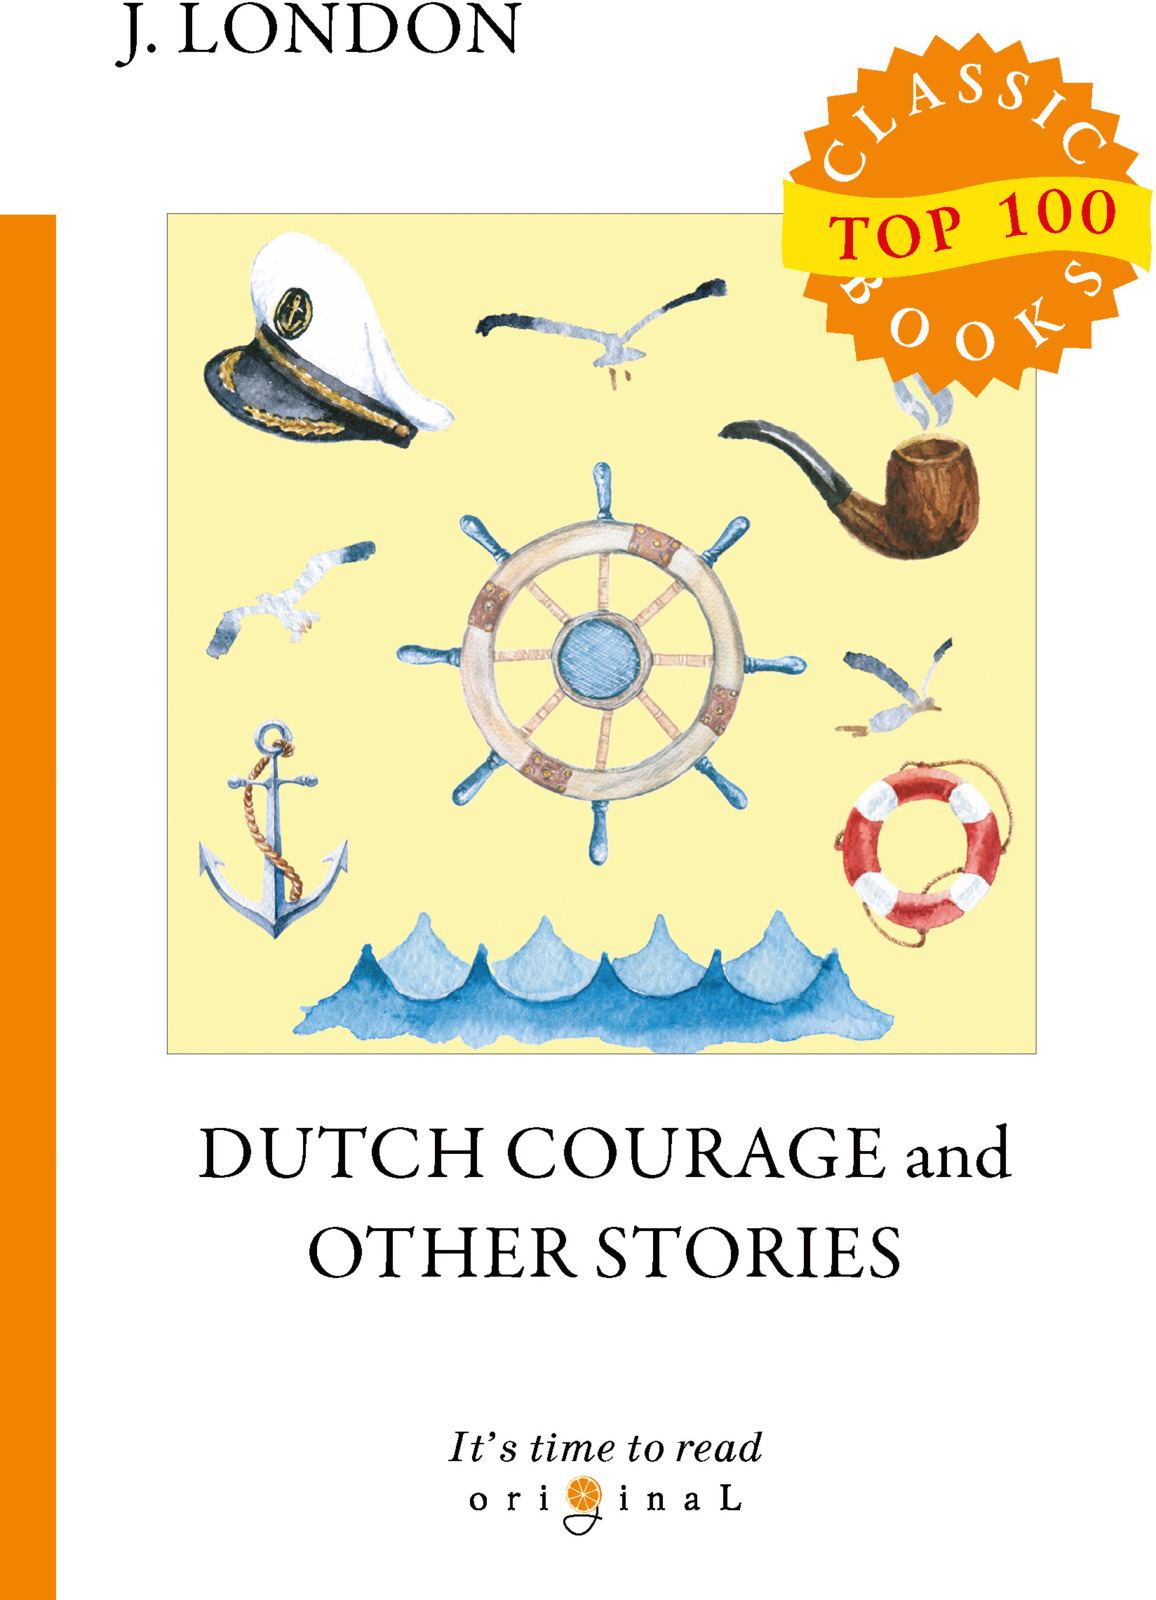 J. London Dutch Courage and Other Stories london j short stories iv the house of pride the night born dutch courage and other stories